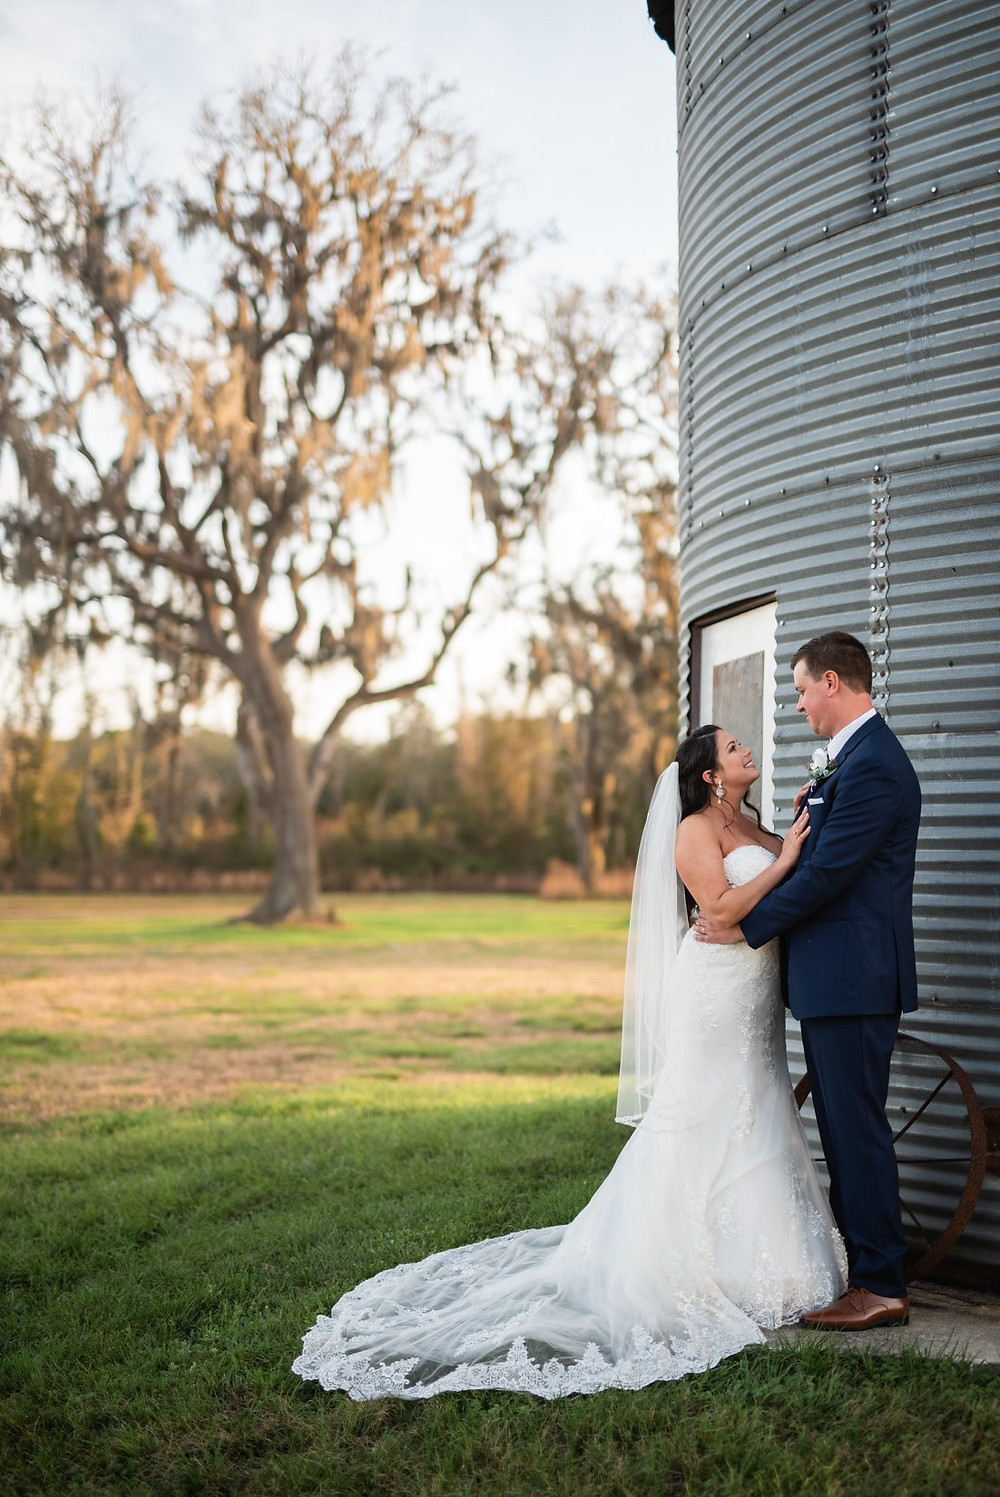 Bride & Groom looking at each other next to a Silo.